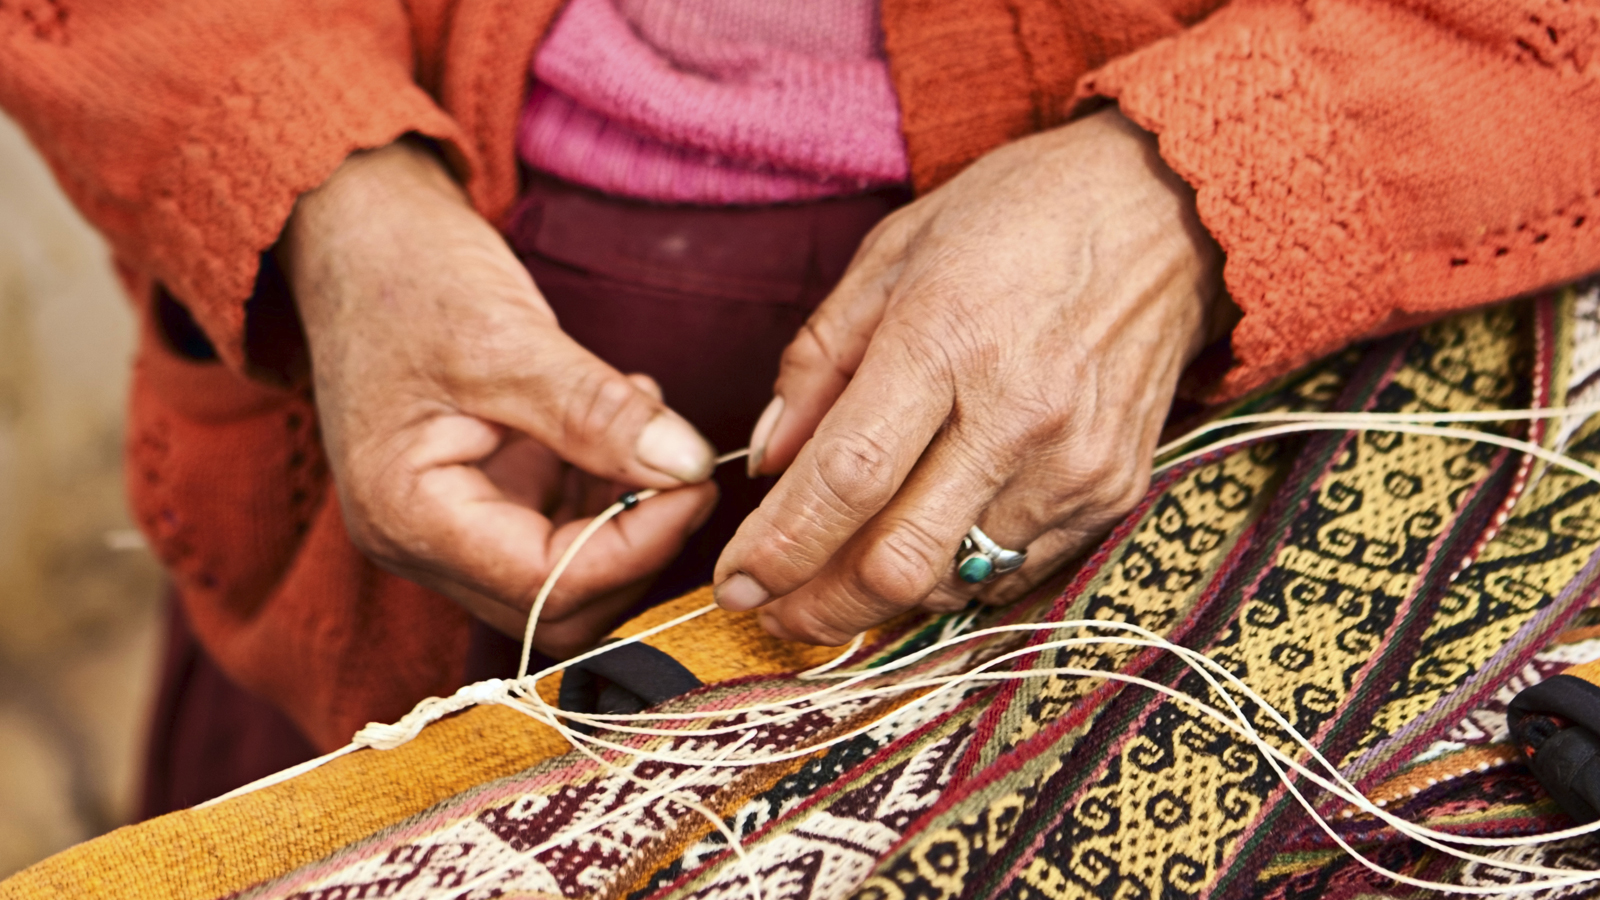 hands-sewing-1600x900